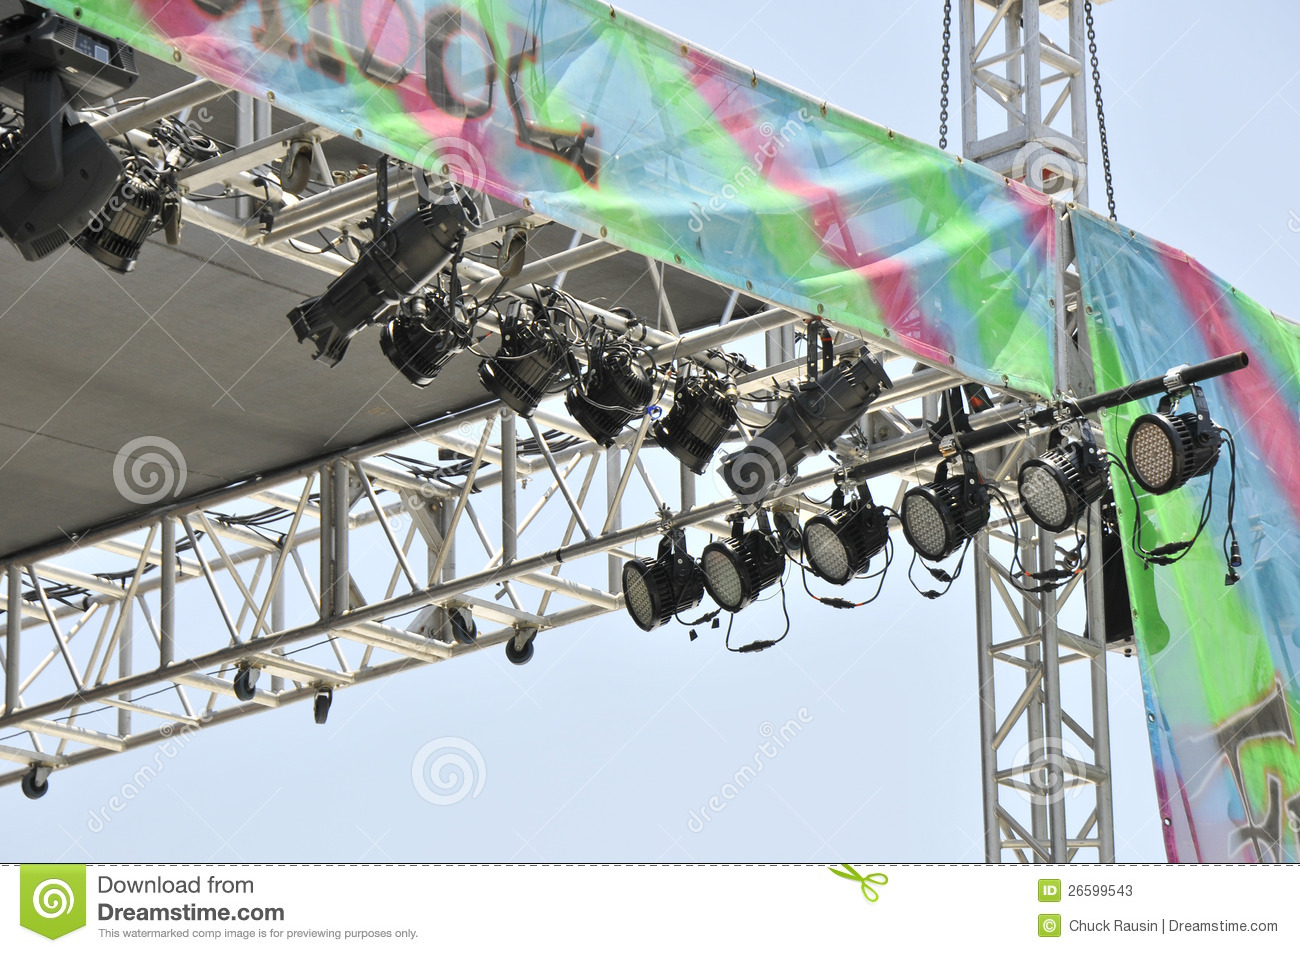 Stage Lighting Equipment Stock Photos - Image: 26599543